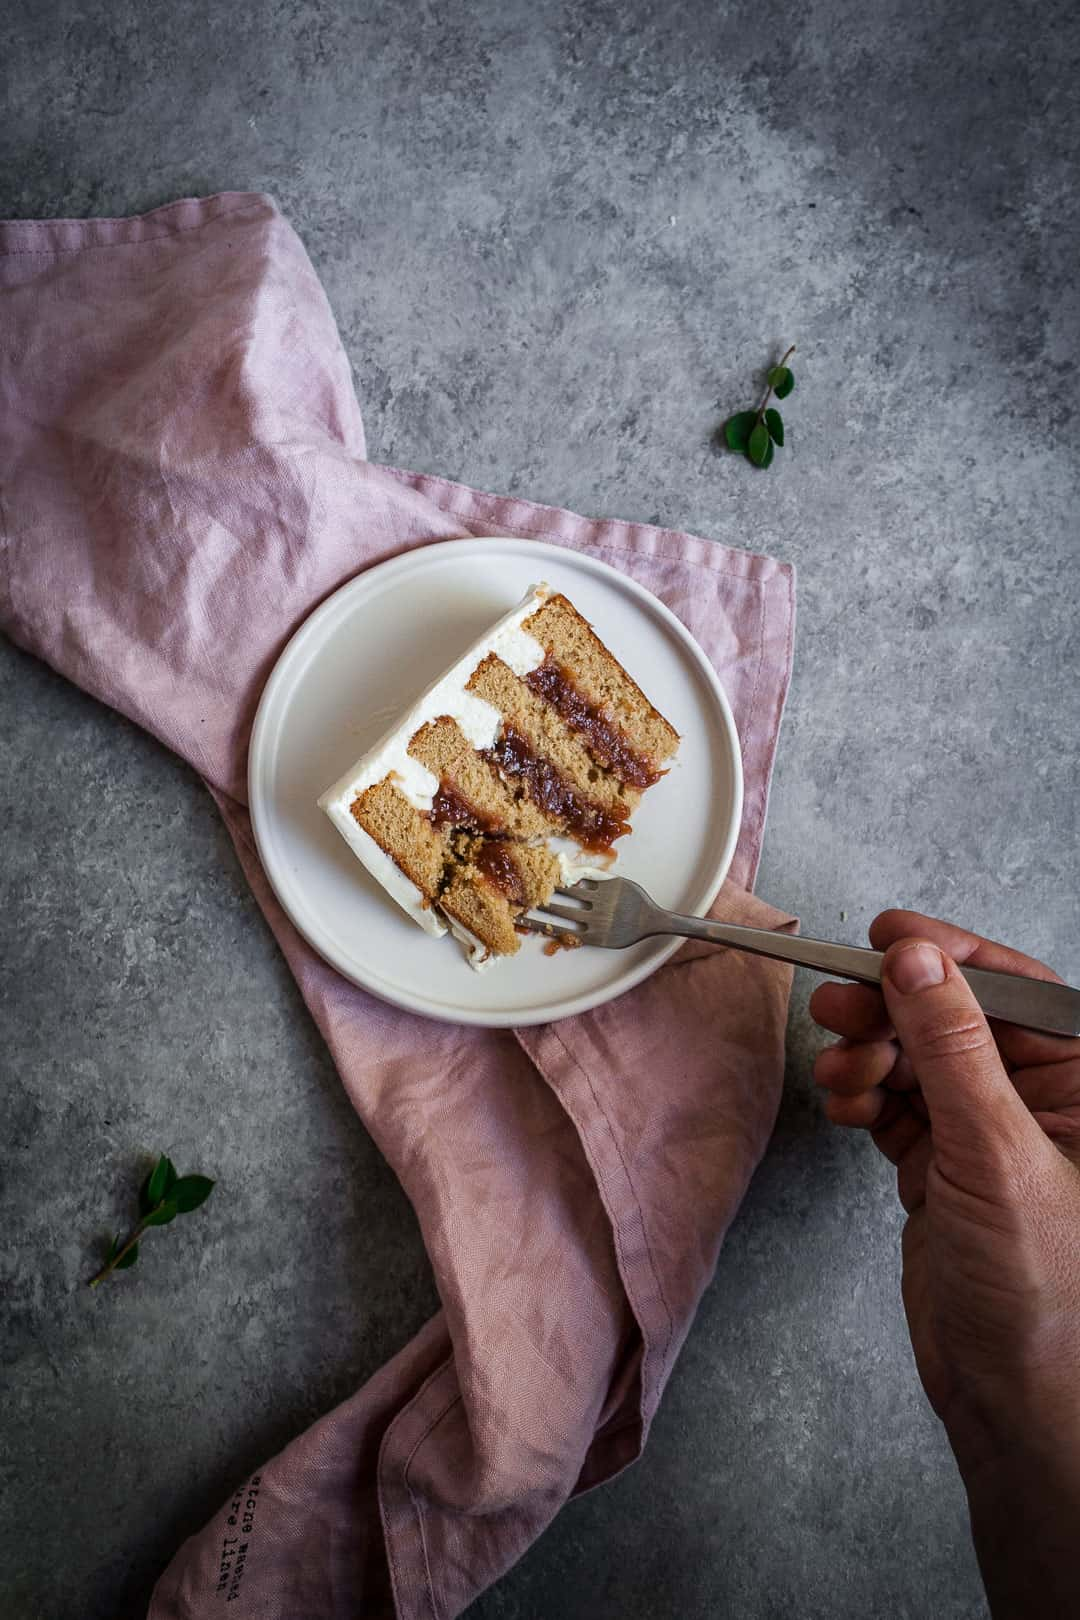 Hand holding a fork and cutting into a slice of brown sugar cake with rhubarb compote and creme fraiche buttercream on a pink linen napkin and a grey background